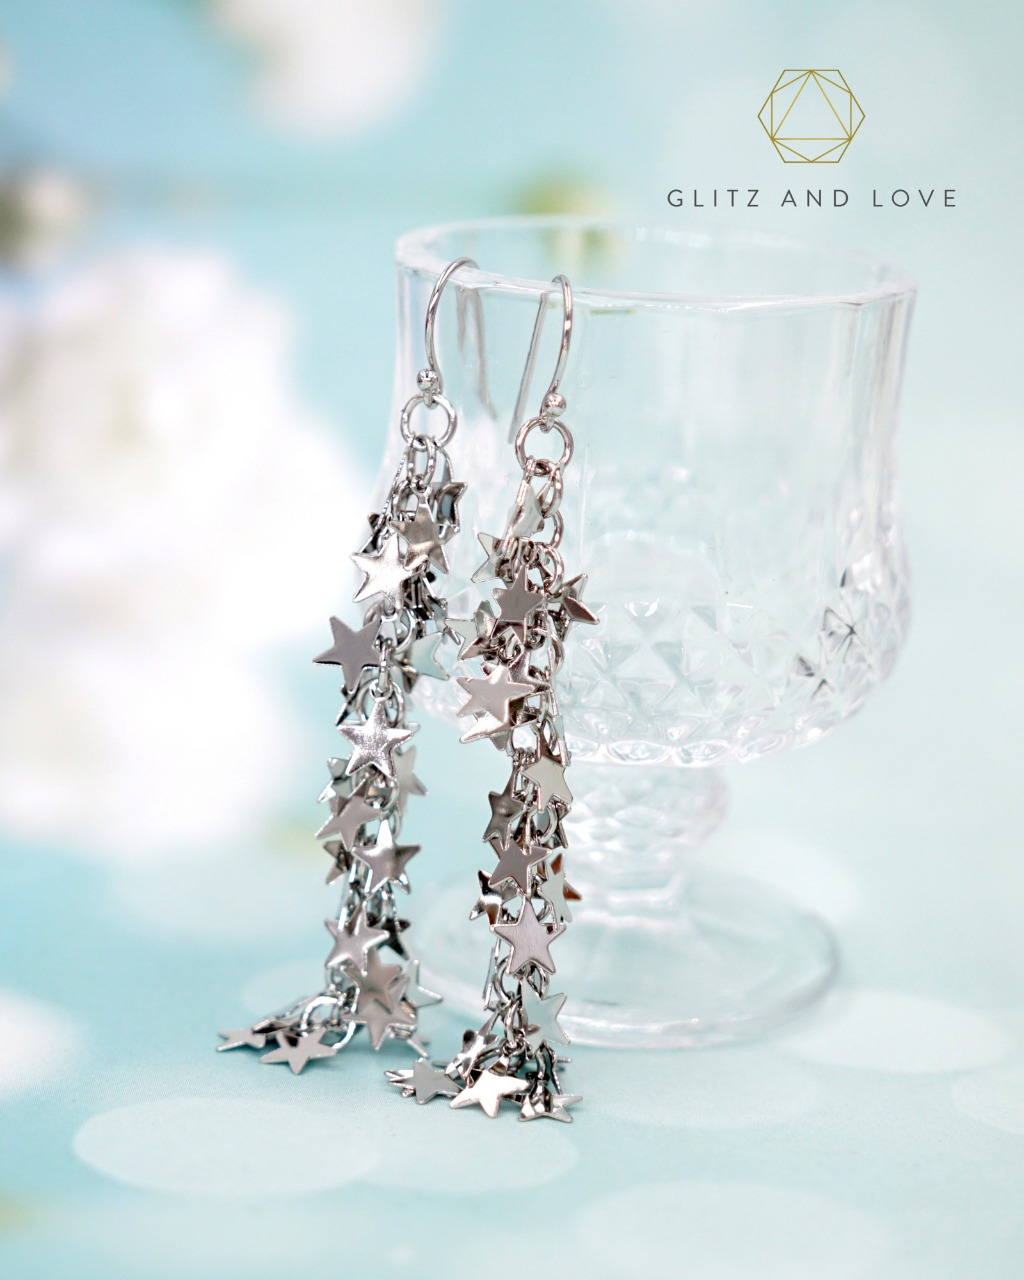 Thousands Stars Earrings - Welcome to Glitz & Love where you will find a collection of exquisite and intricately handcrafted pieces